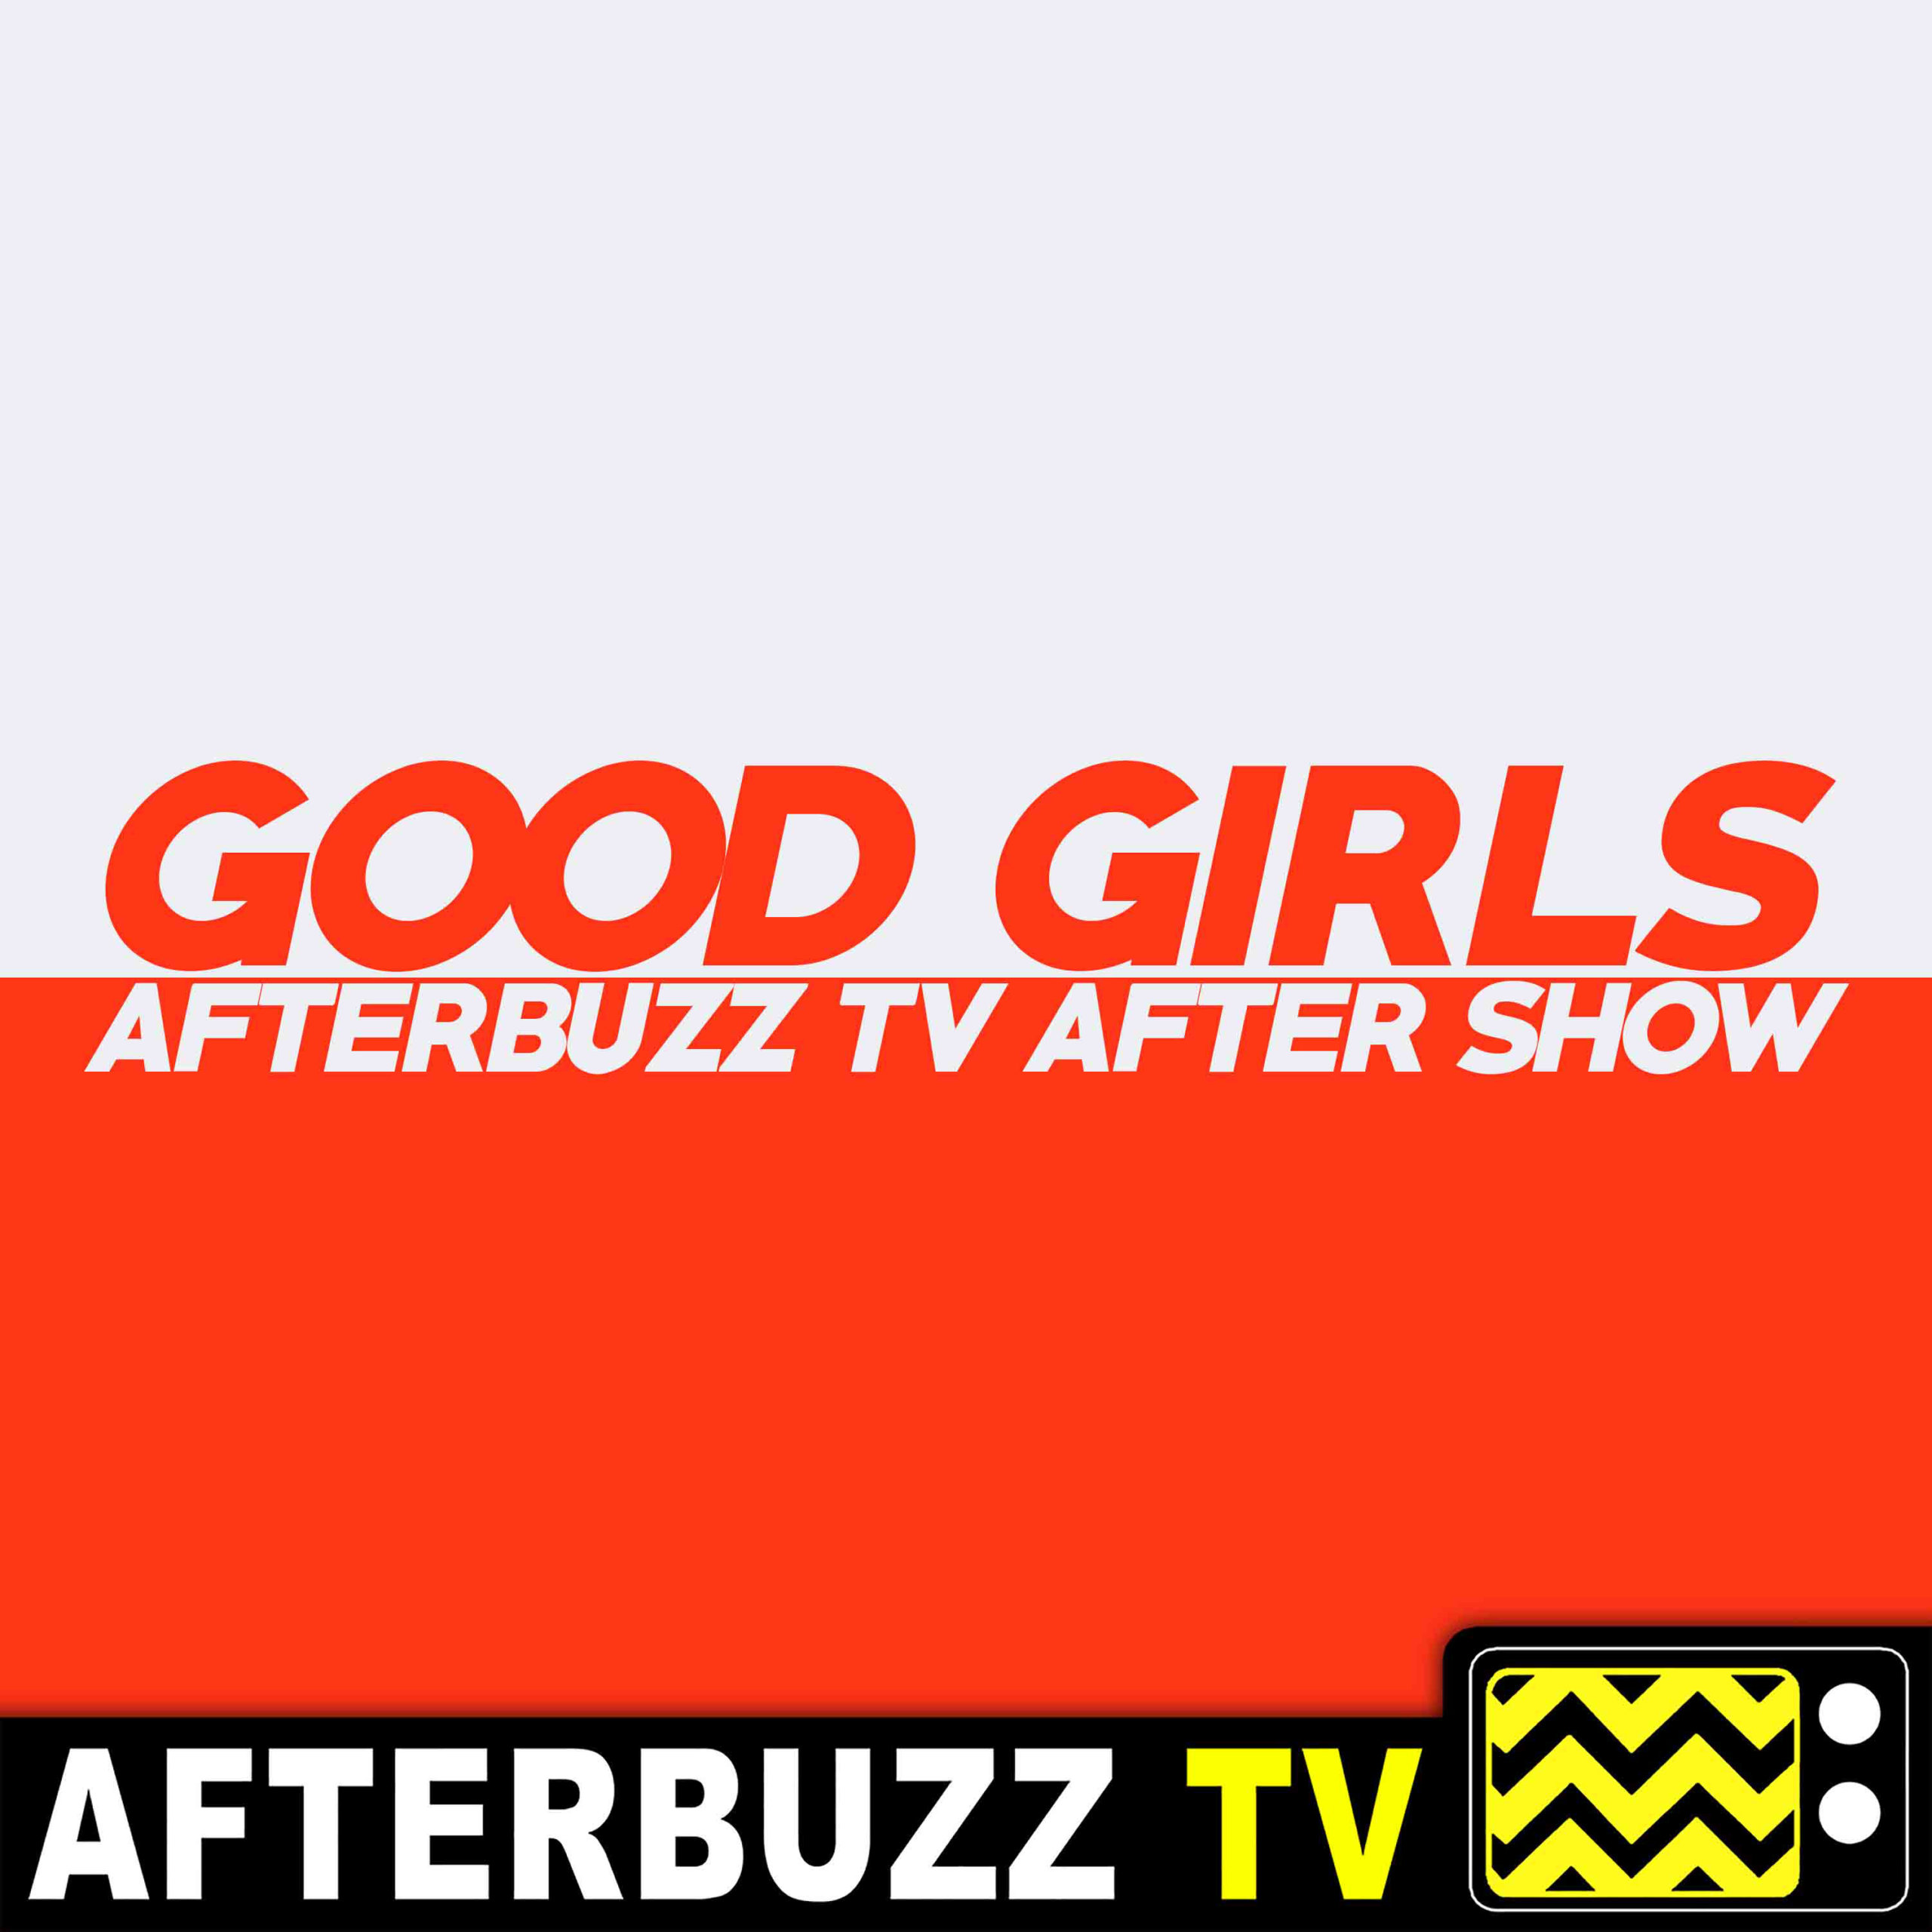 Good Girls S3 E11 Recap & After Show: Season 3 Finale!